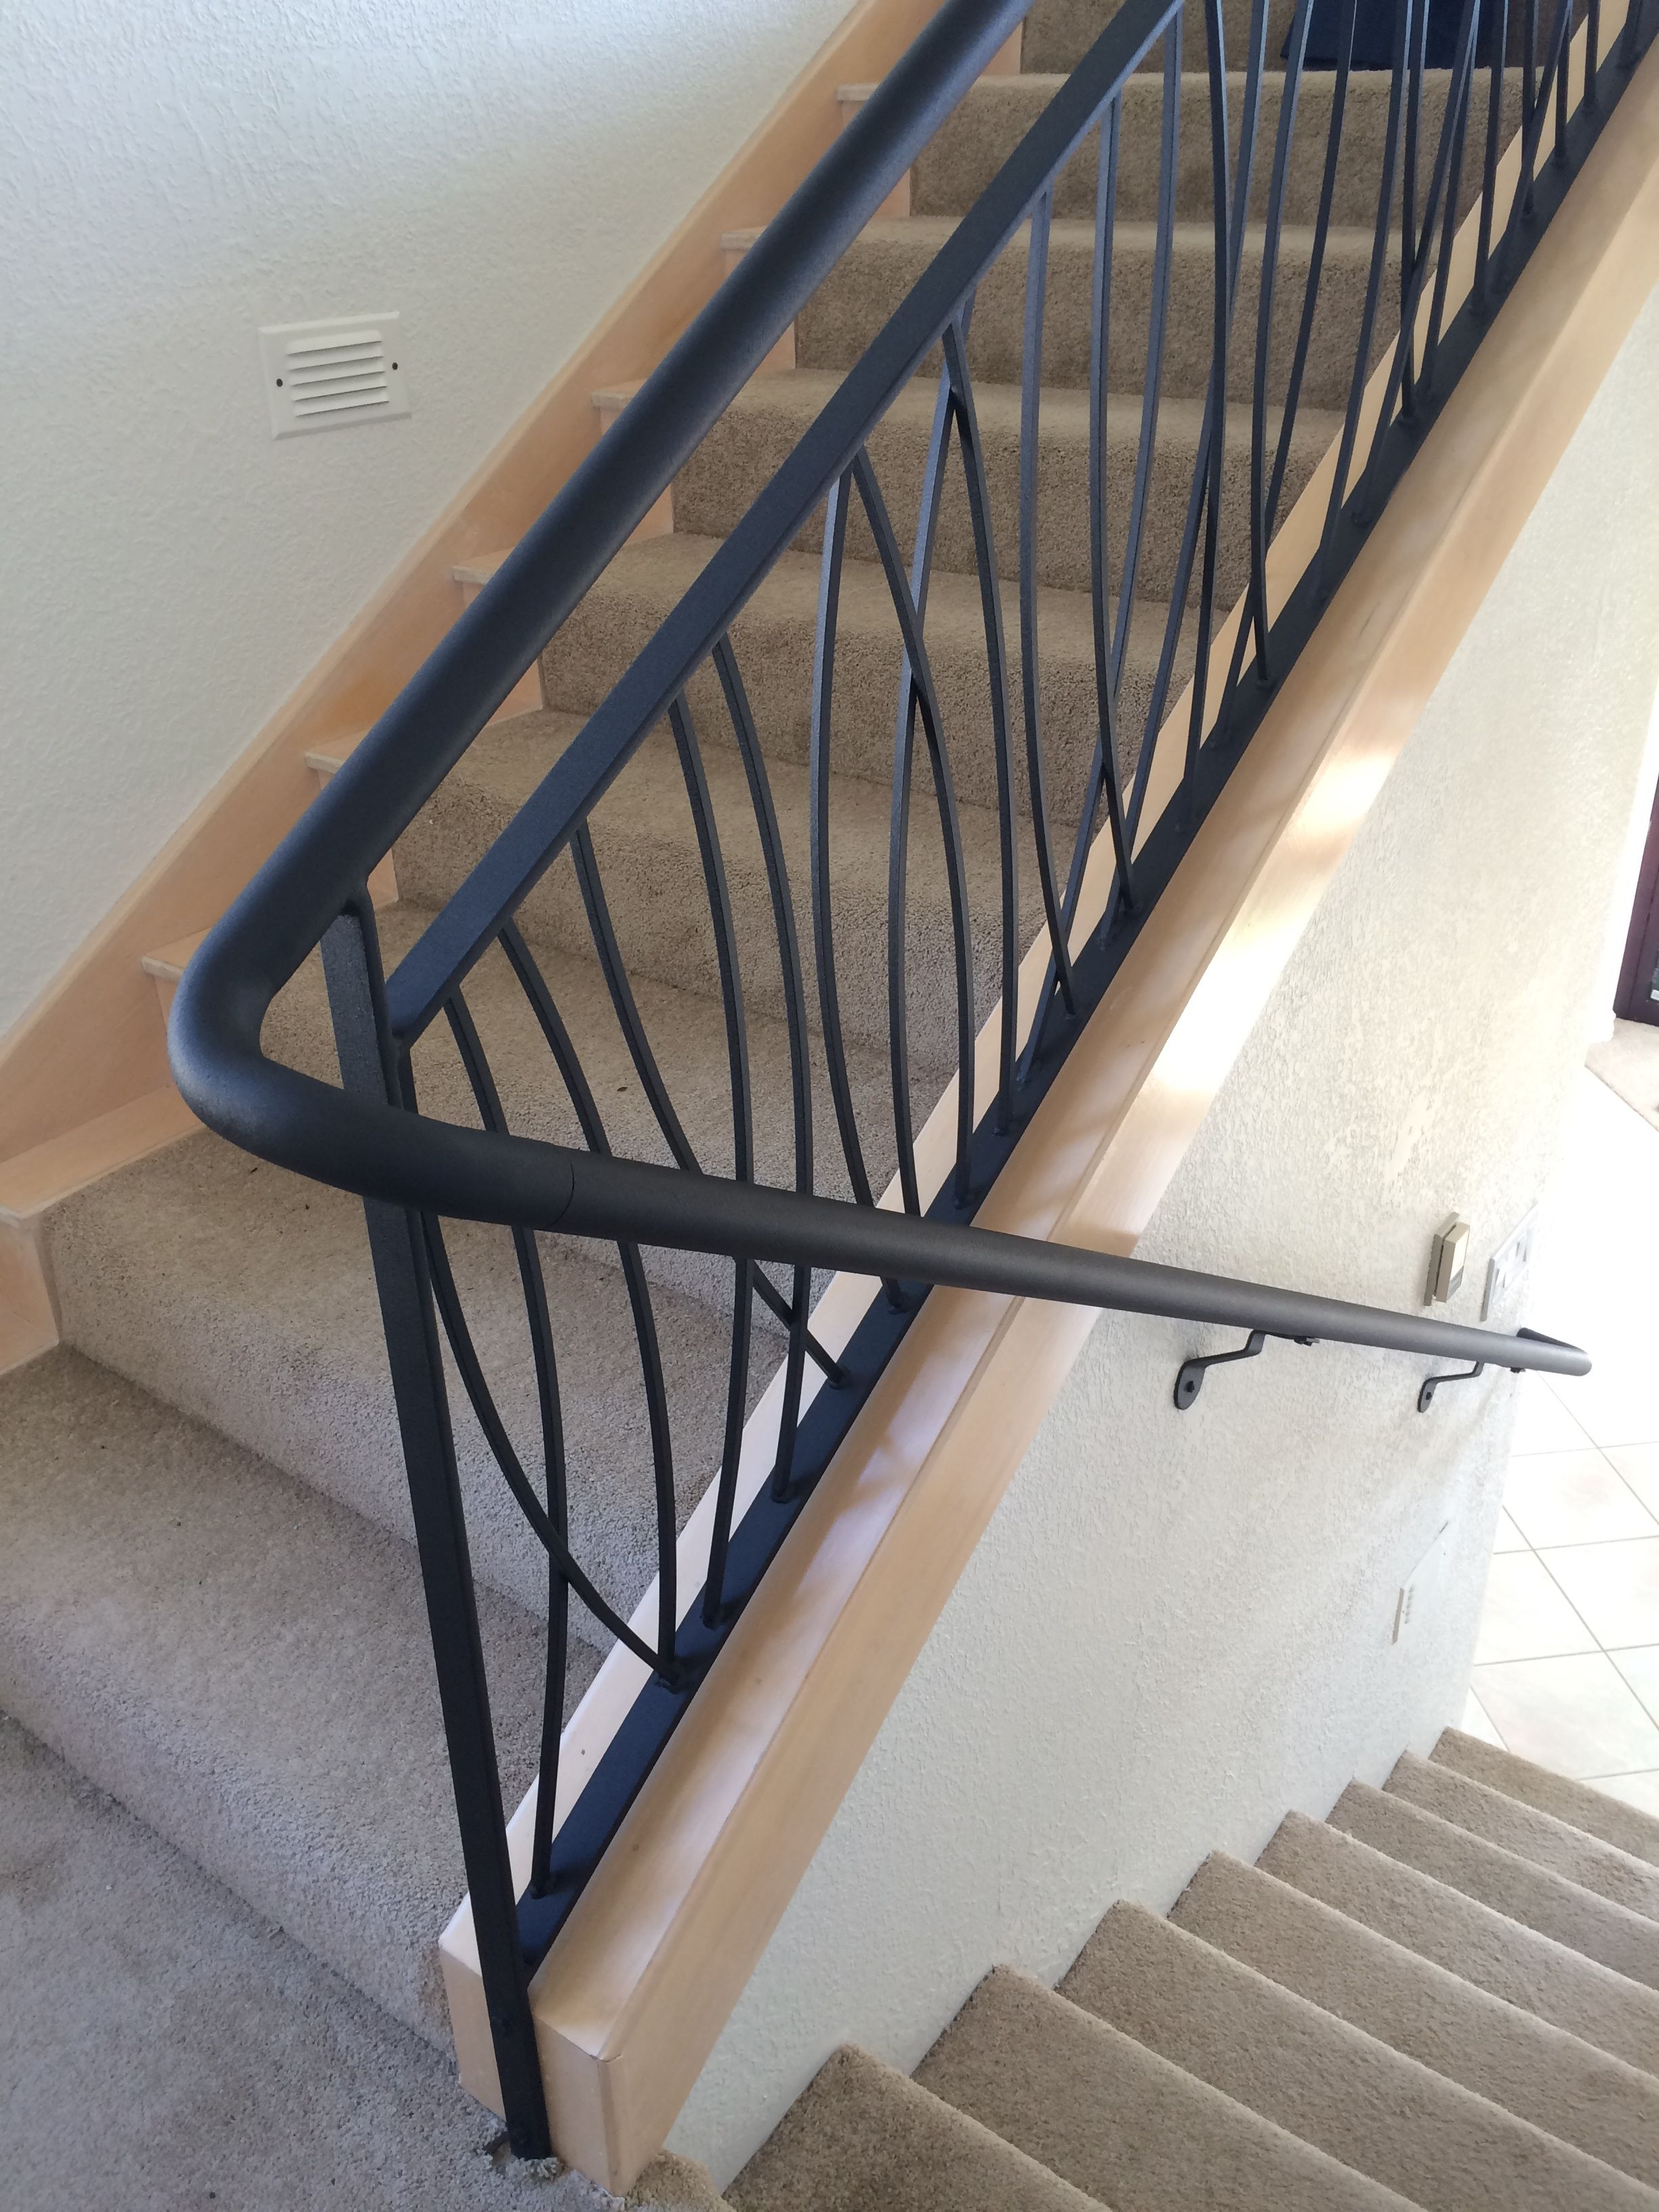 Custom Residential Wall Mount Stair Rail System With Long Grass